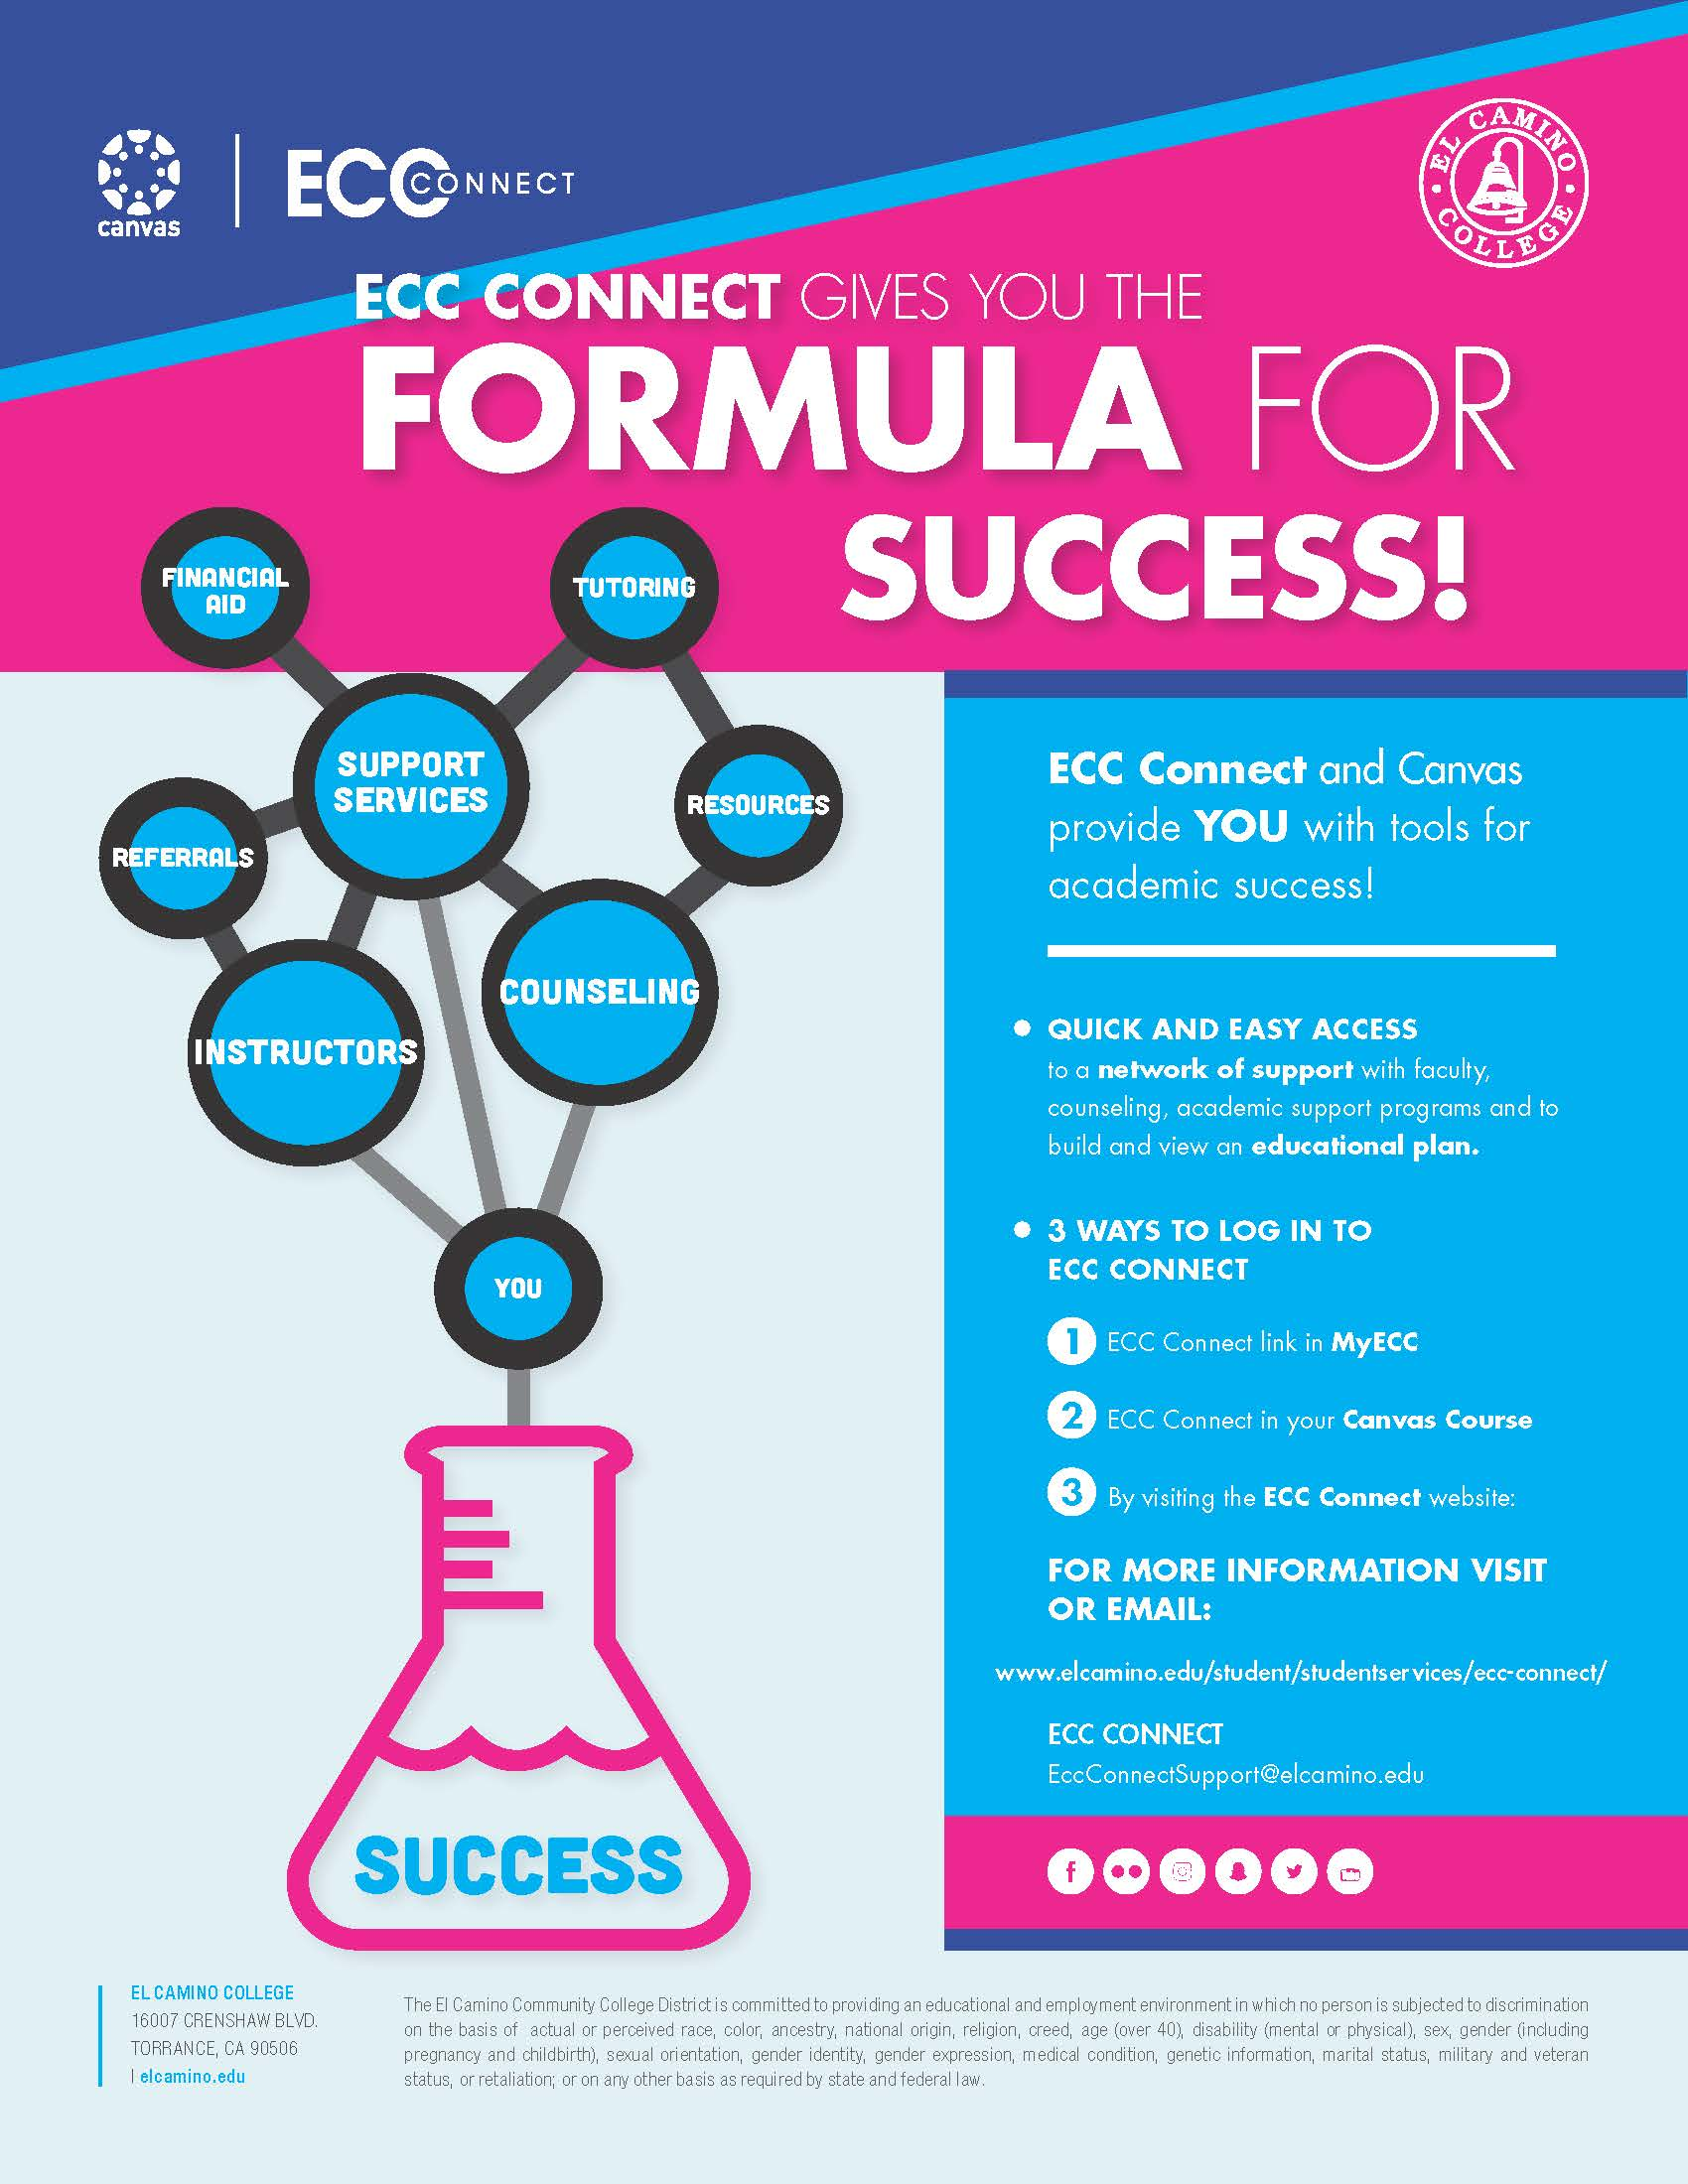 Please click image for accessible PDF version of Formula for Success